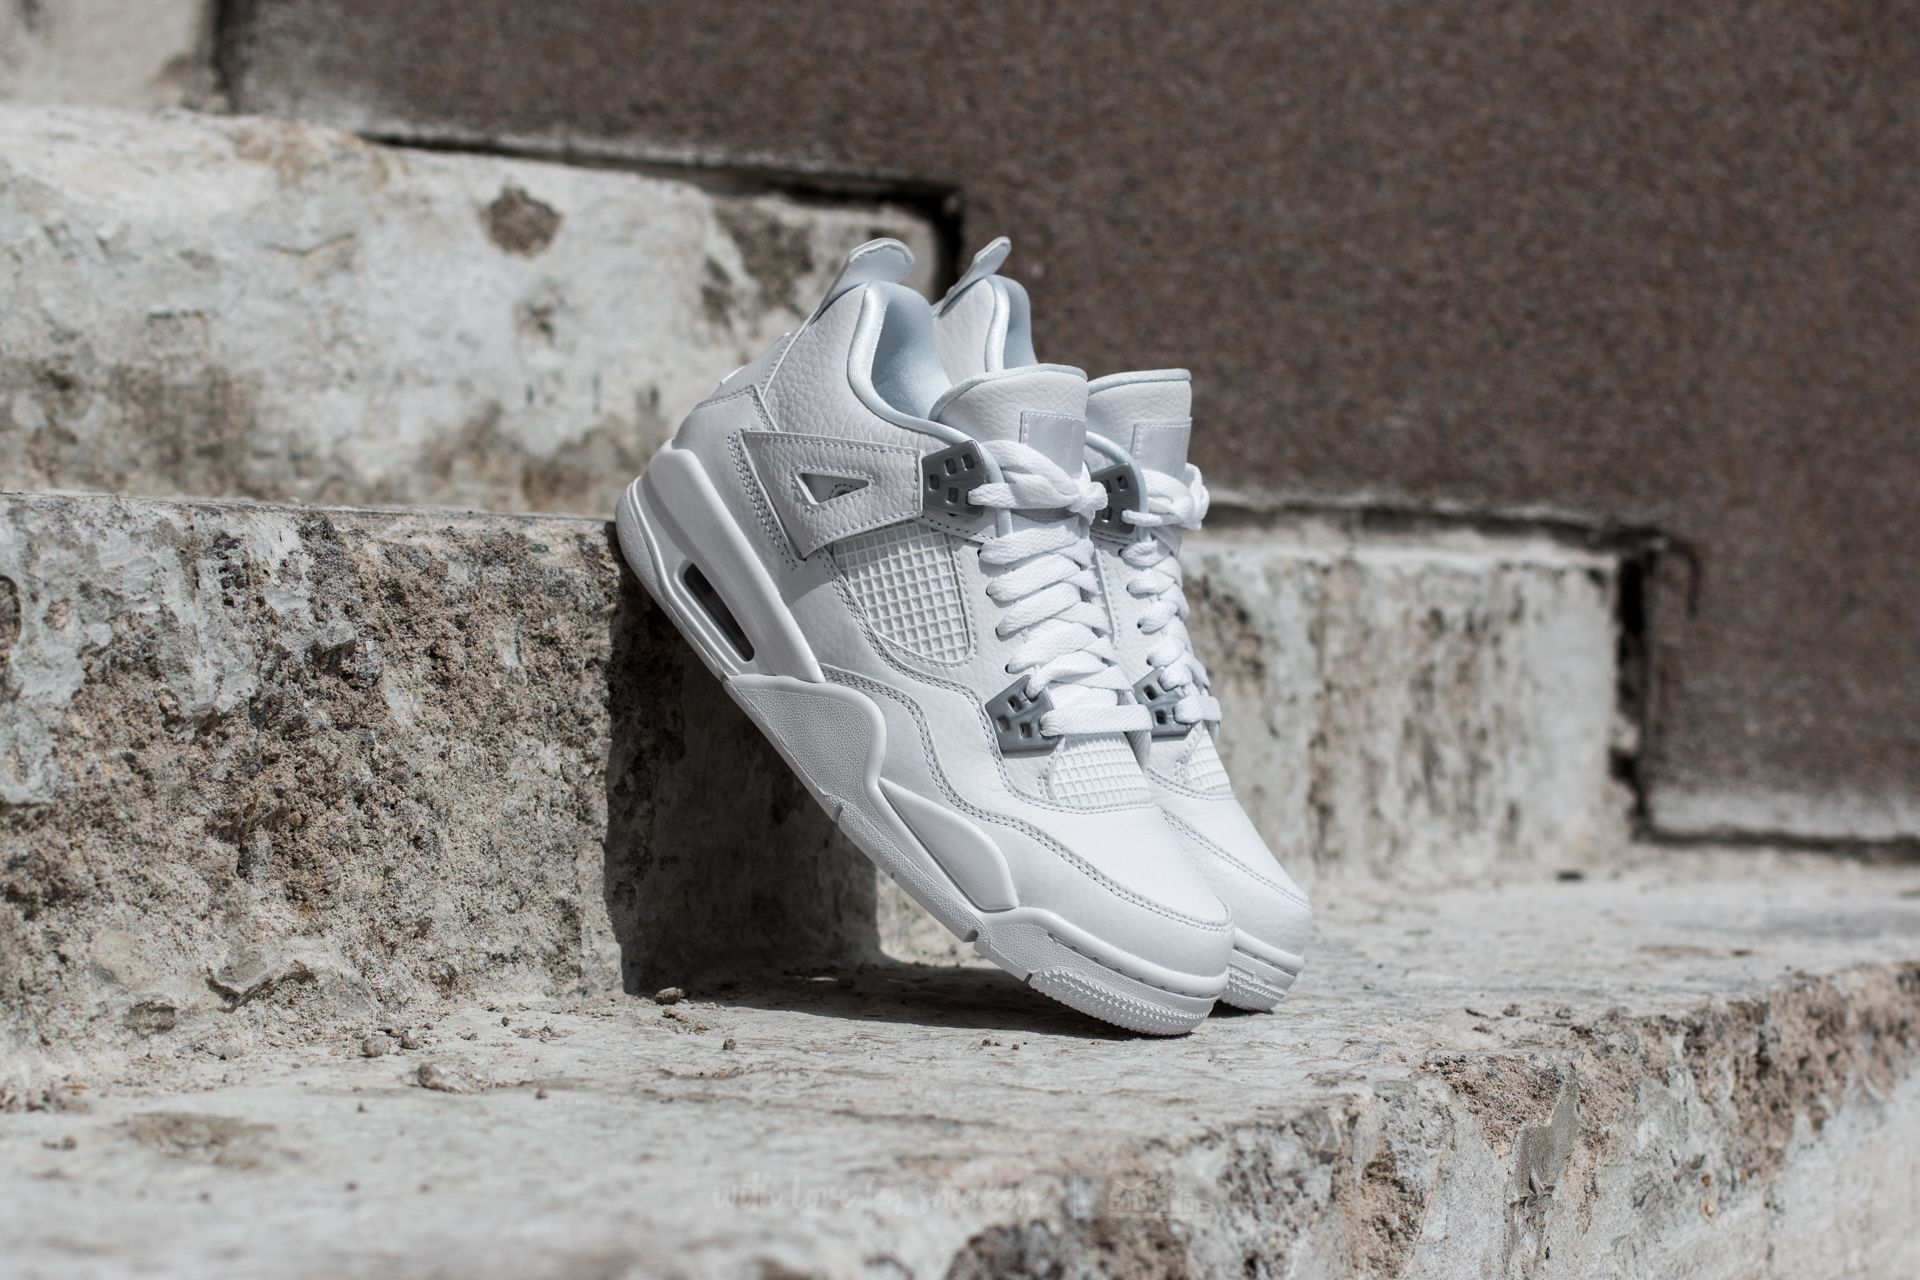 fdca247323d Air Jordan 4 Retro BG 'Pure Money' White/ Metallic Silver | Footshop